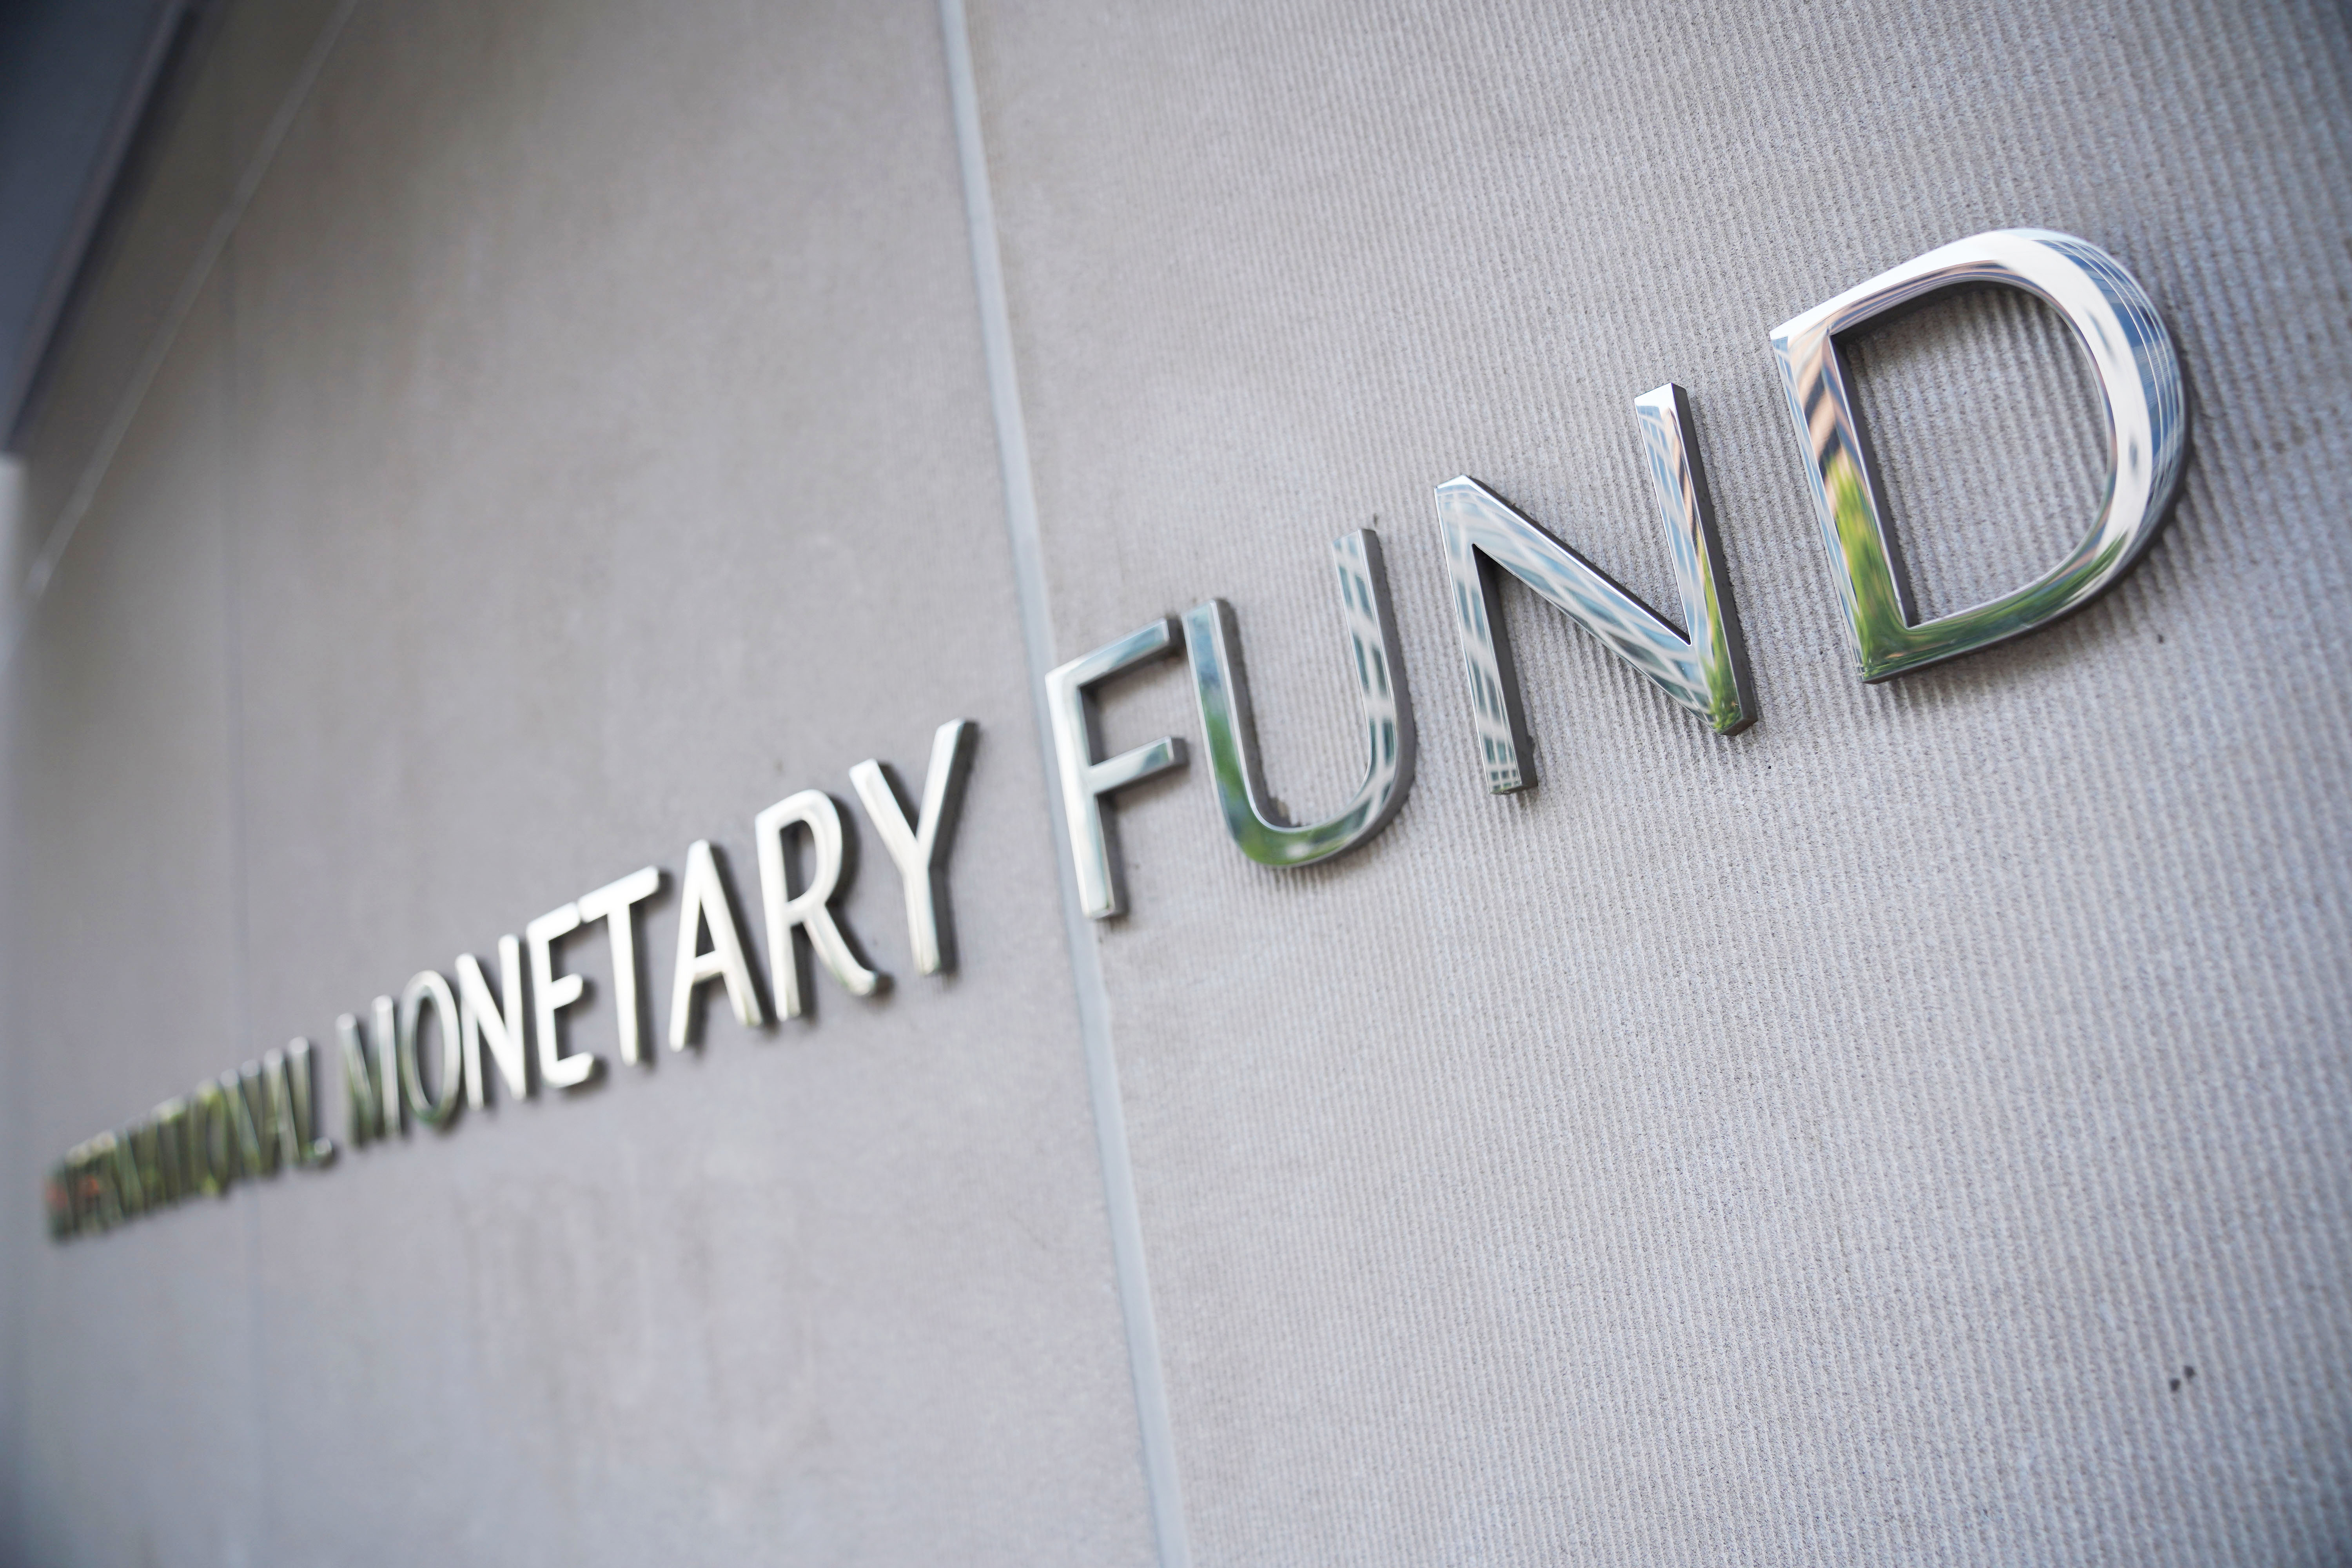 IMF executive board approves immediate debt relief for 25 countries